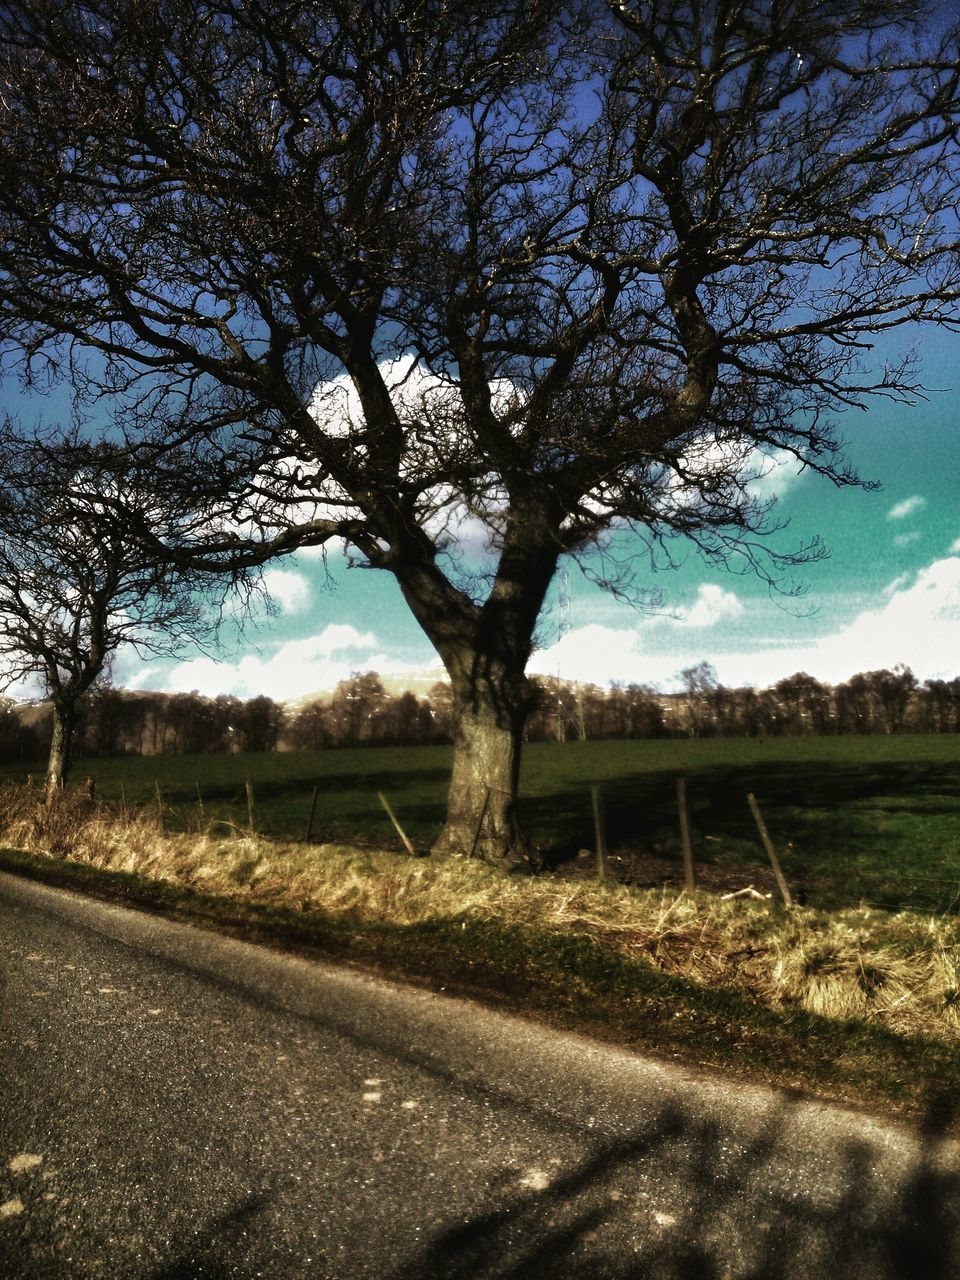 tree, landscape, nature, tranquility, no people, sky, bare tree, field, day, road, branch, scenics, outdoors, grass, beauty in nature